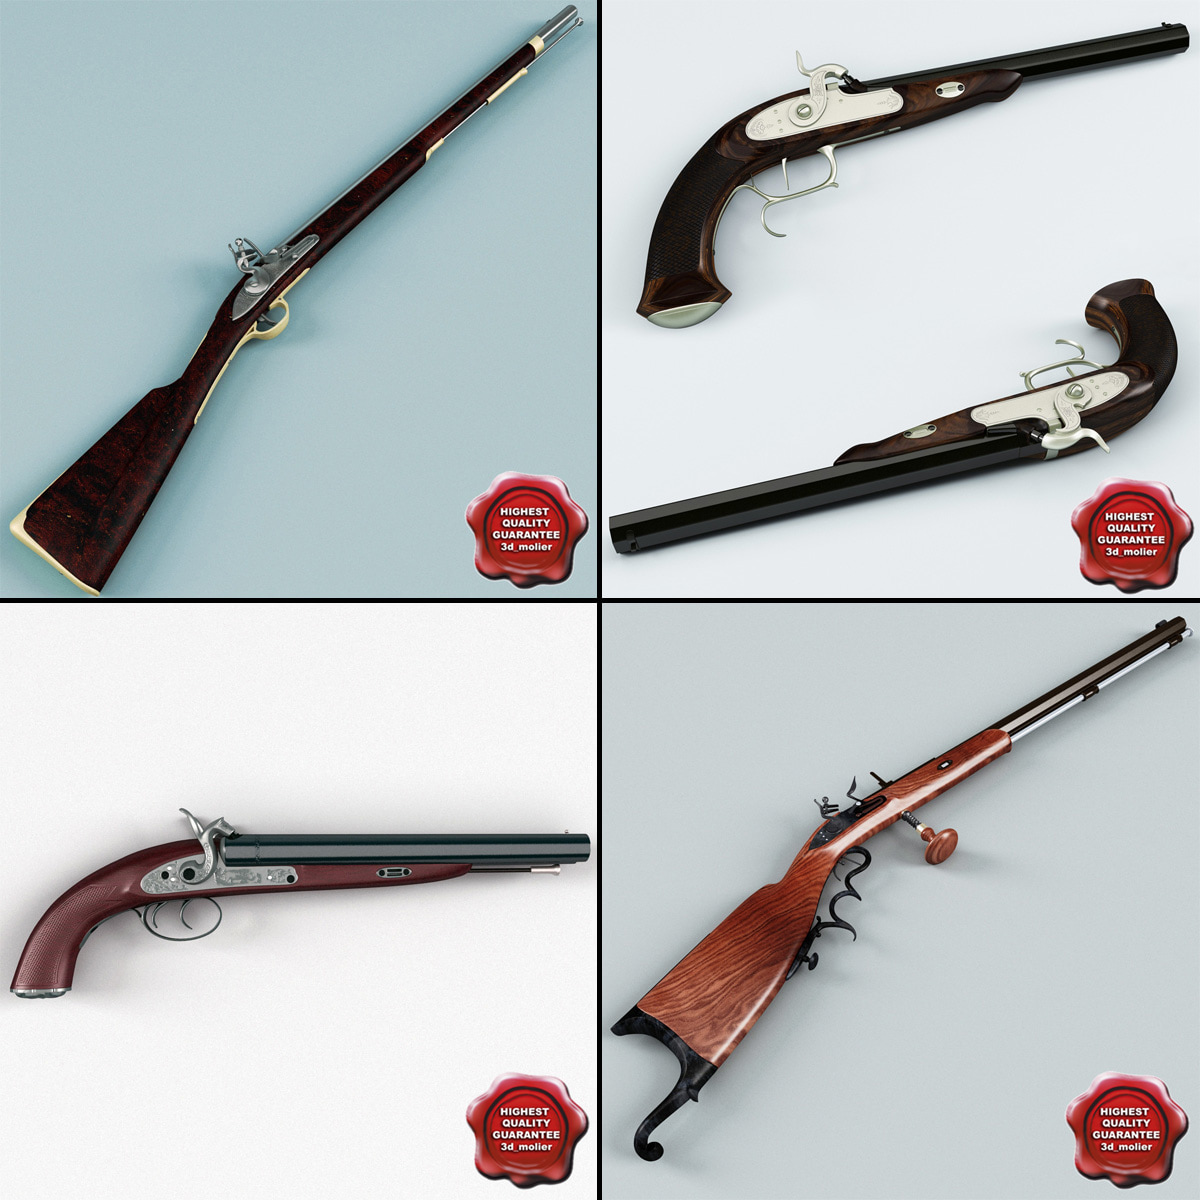 Old_Muskets_Collection_V3_00.jpg